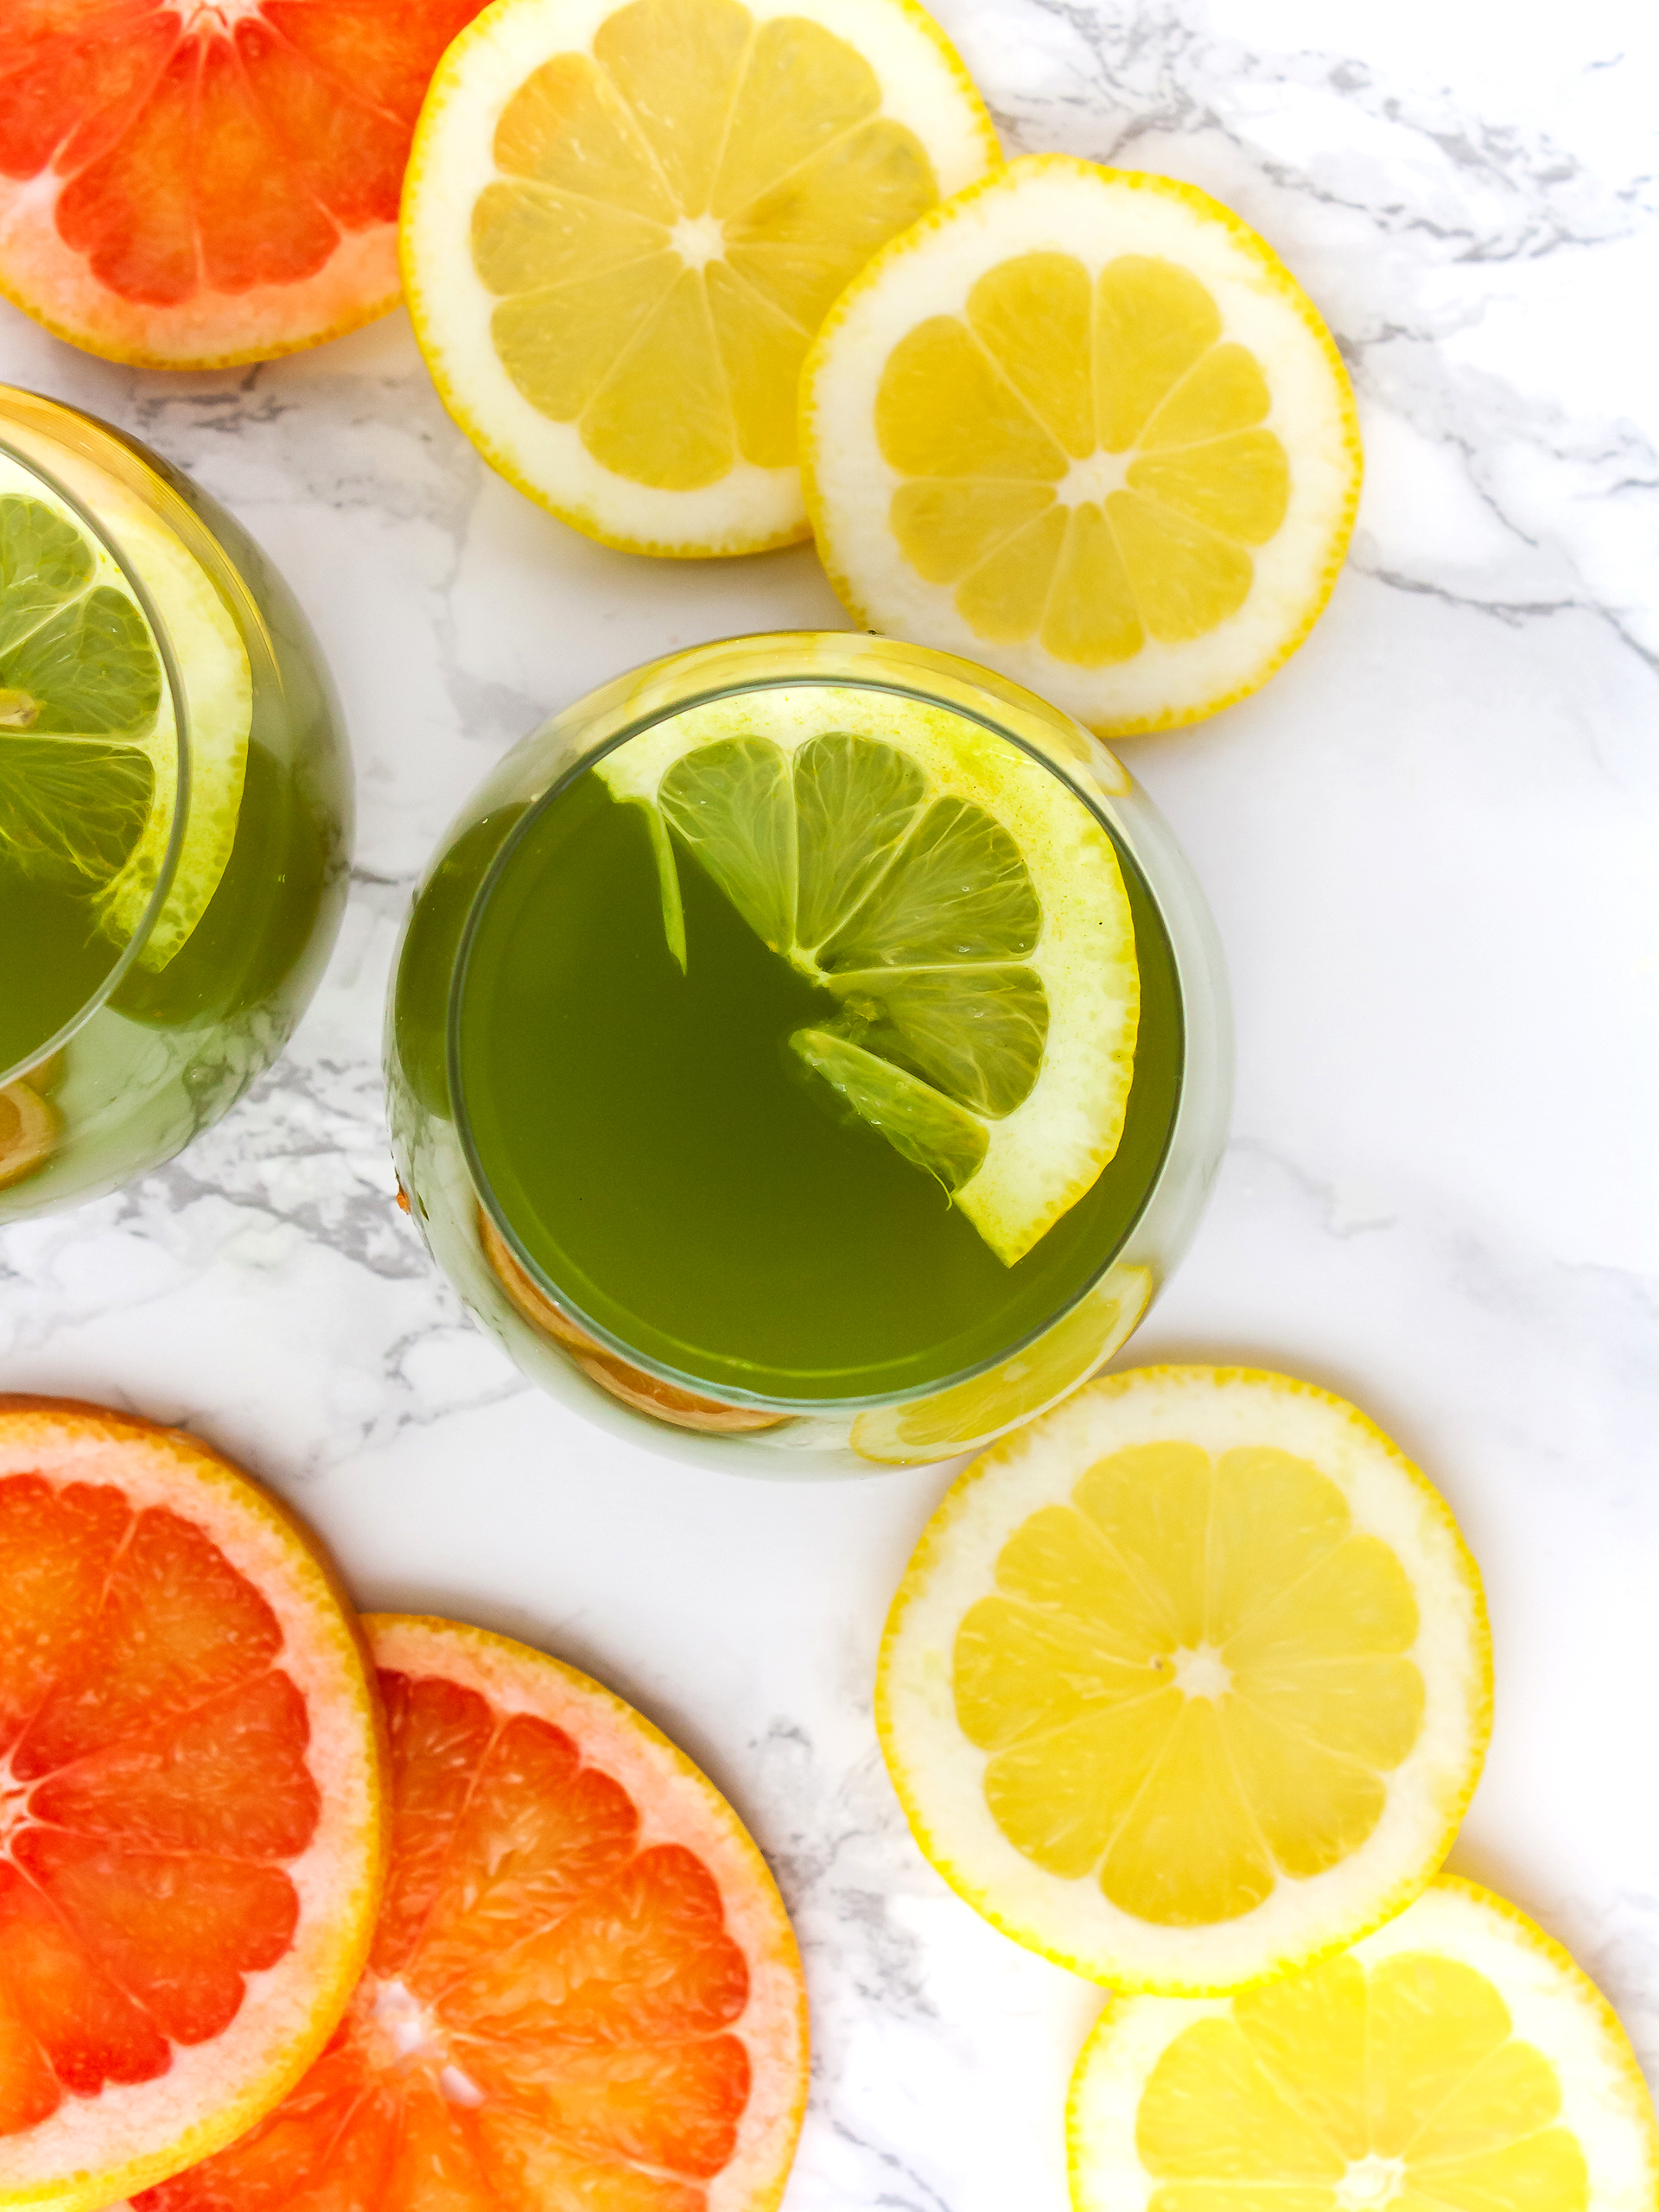 Detox Grapefruit Spirulina Lemonade with Turmeric Thumbnail